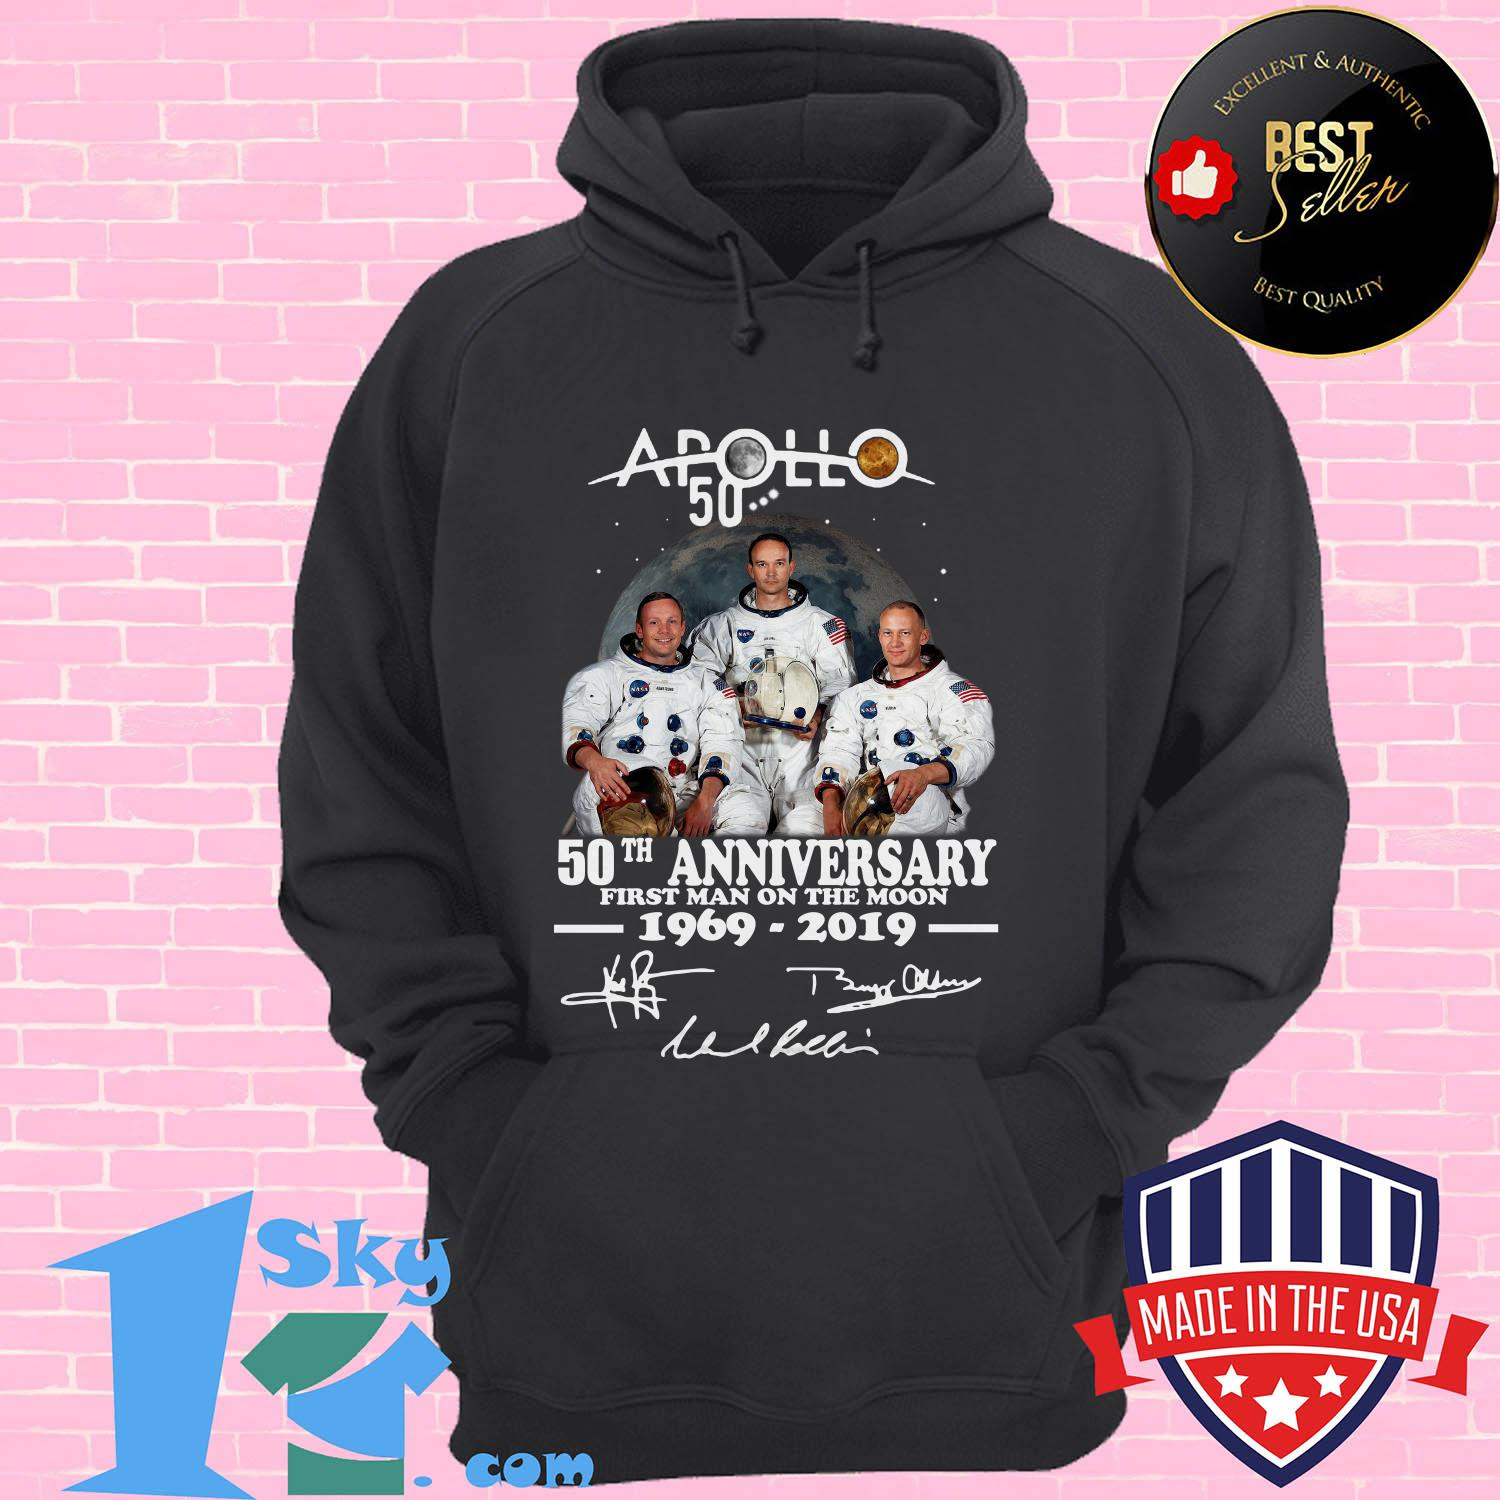 apollo 50th anniversary first man on the moon 1969 2019 rabbit skins toddler fleece signature hoodie - Apollo 50th anniversary first Man on the moon 1969-2019 rabbit skins toddler fleece signature shirt